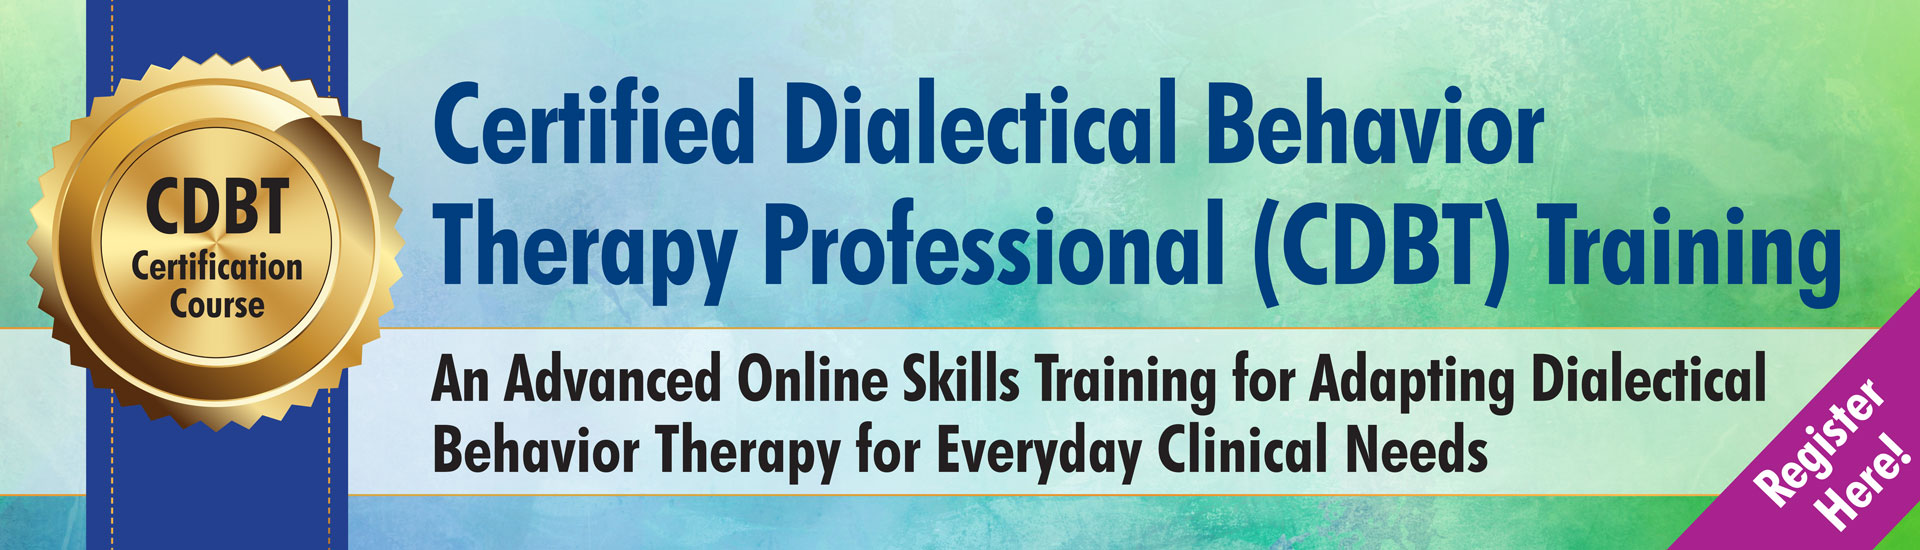 CDBT Training Online Course